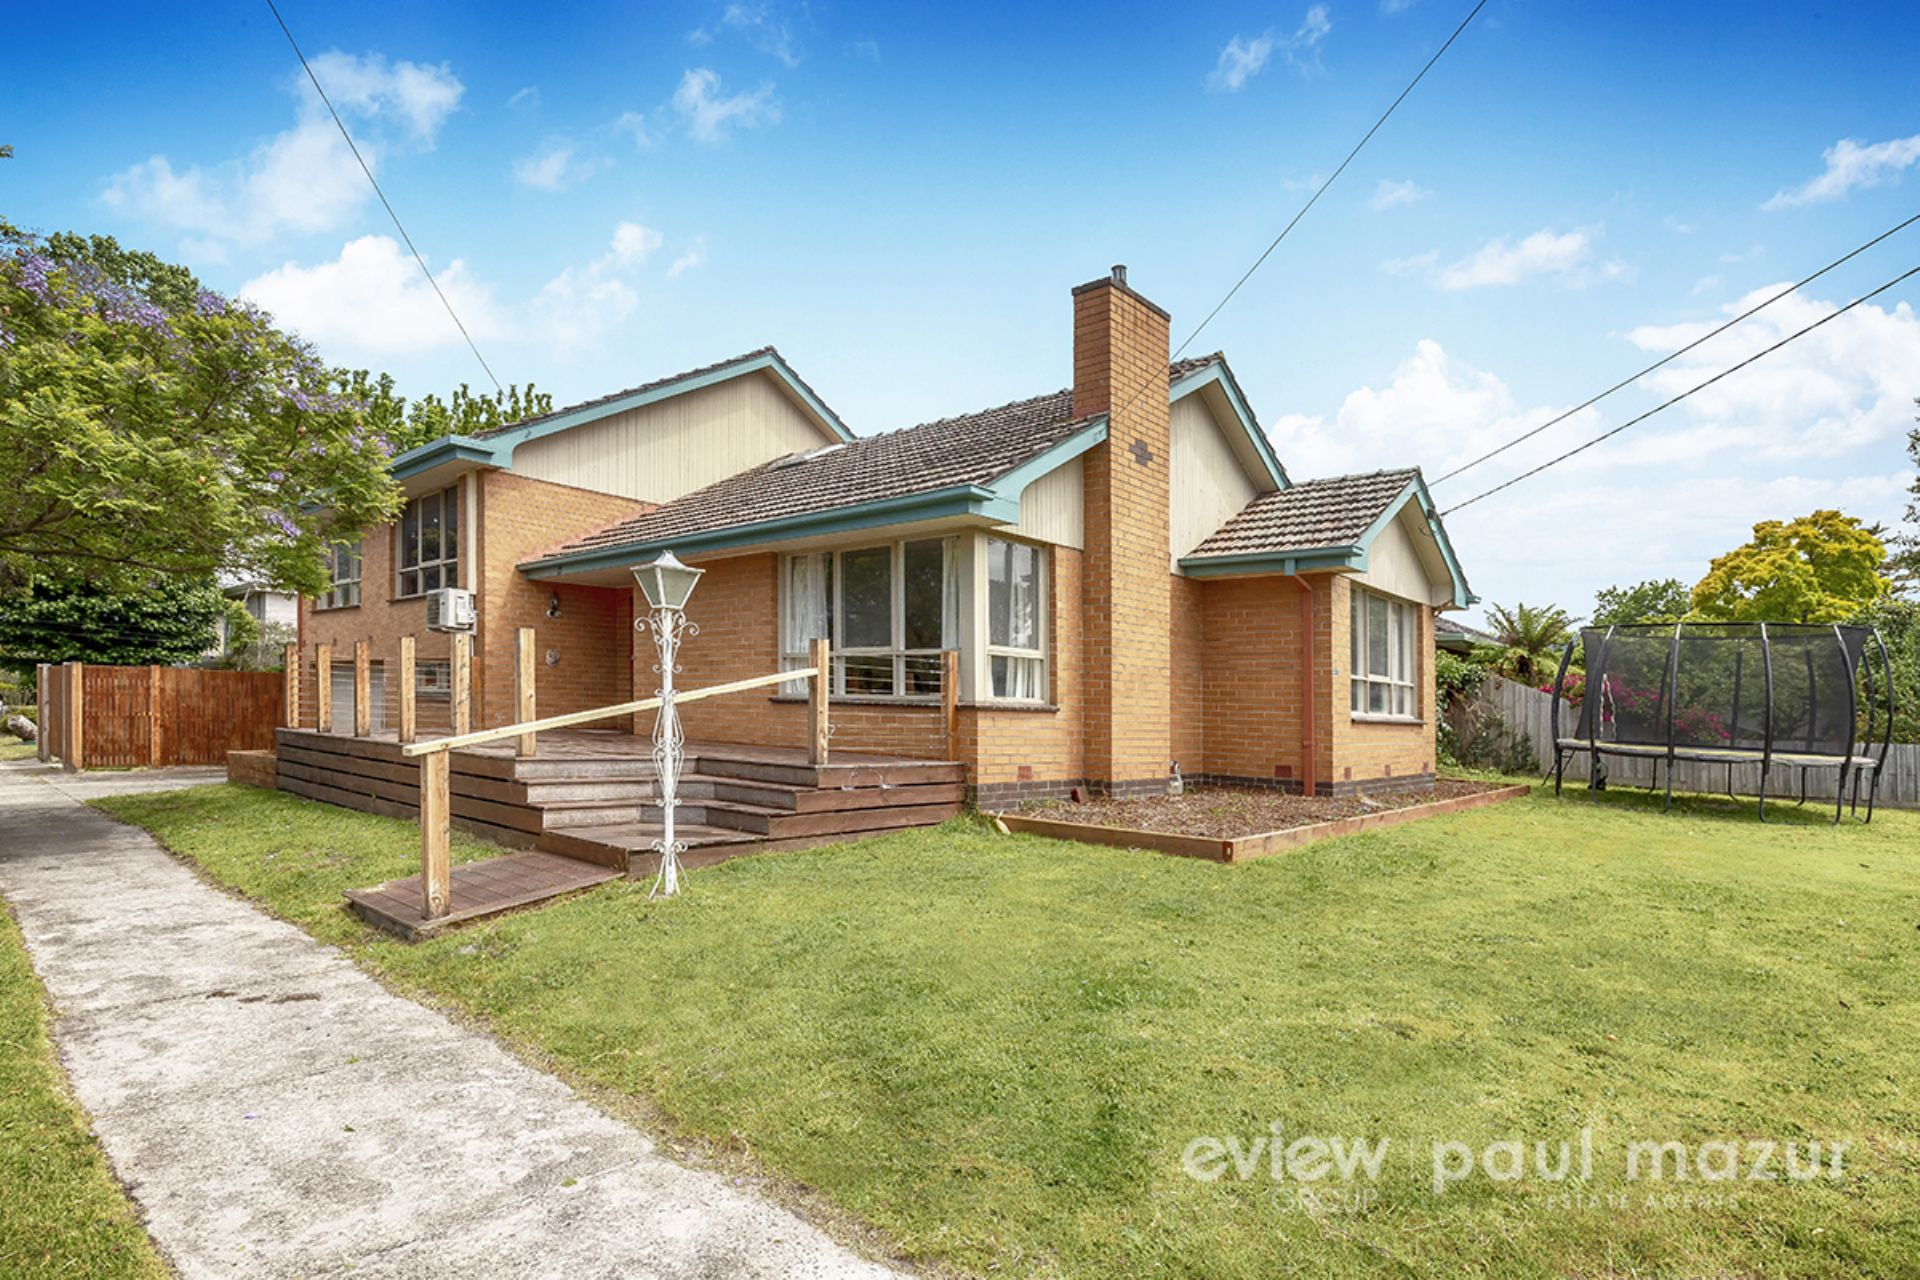 12 Forest Park Road, DINGLEY VILLAGE, VIC, 3172 - Image